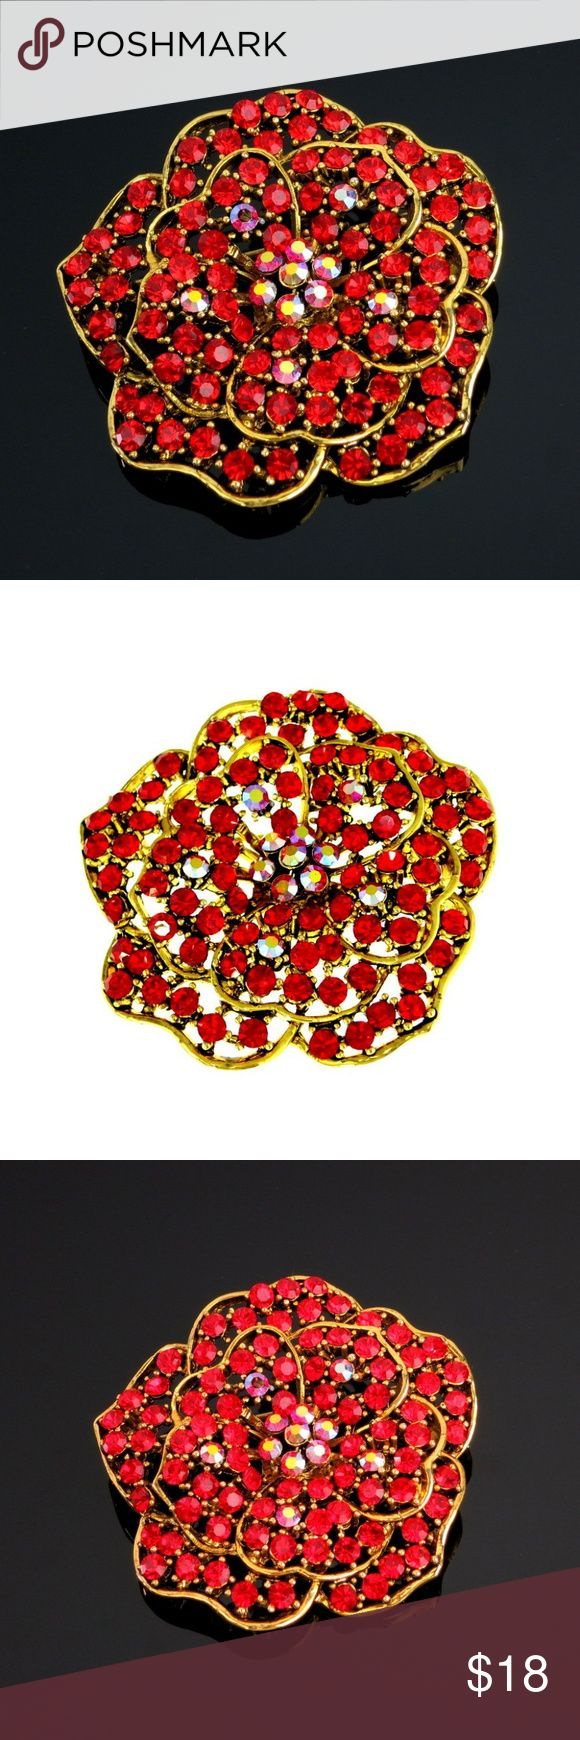 "Rose Brooch Red Rhinestone AB Floral Flower Floral Rose Brooch Red Aurora Borealis Rhinestone   Incredible bright red and red aurora borealis crystal rhinestones make up this pretty rose flower brooch set in gold tone. The brooch appears to be layered with a lettuce leaf design. Joint catch pin closure.   Condition: Previously owned, excellent with no noted flaws.  Measures Approximately: 2"" Diameter Jewelry Brooches"